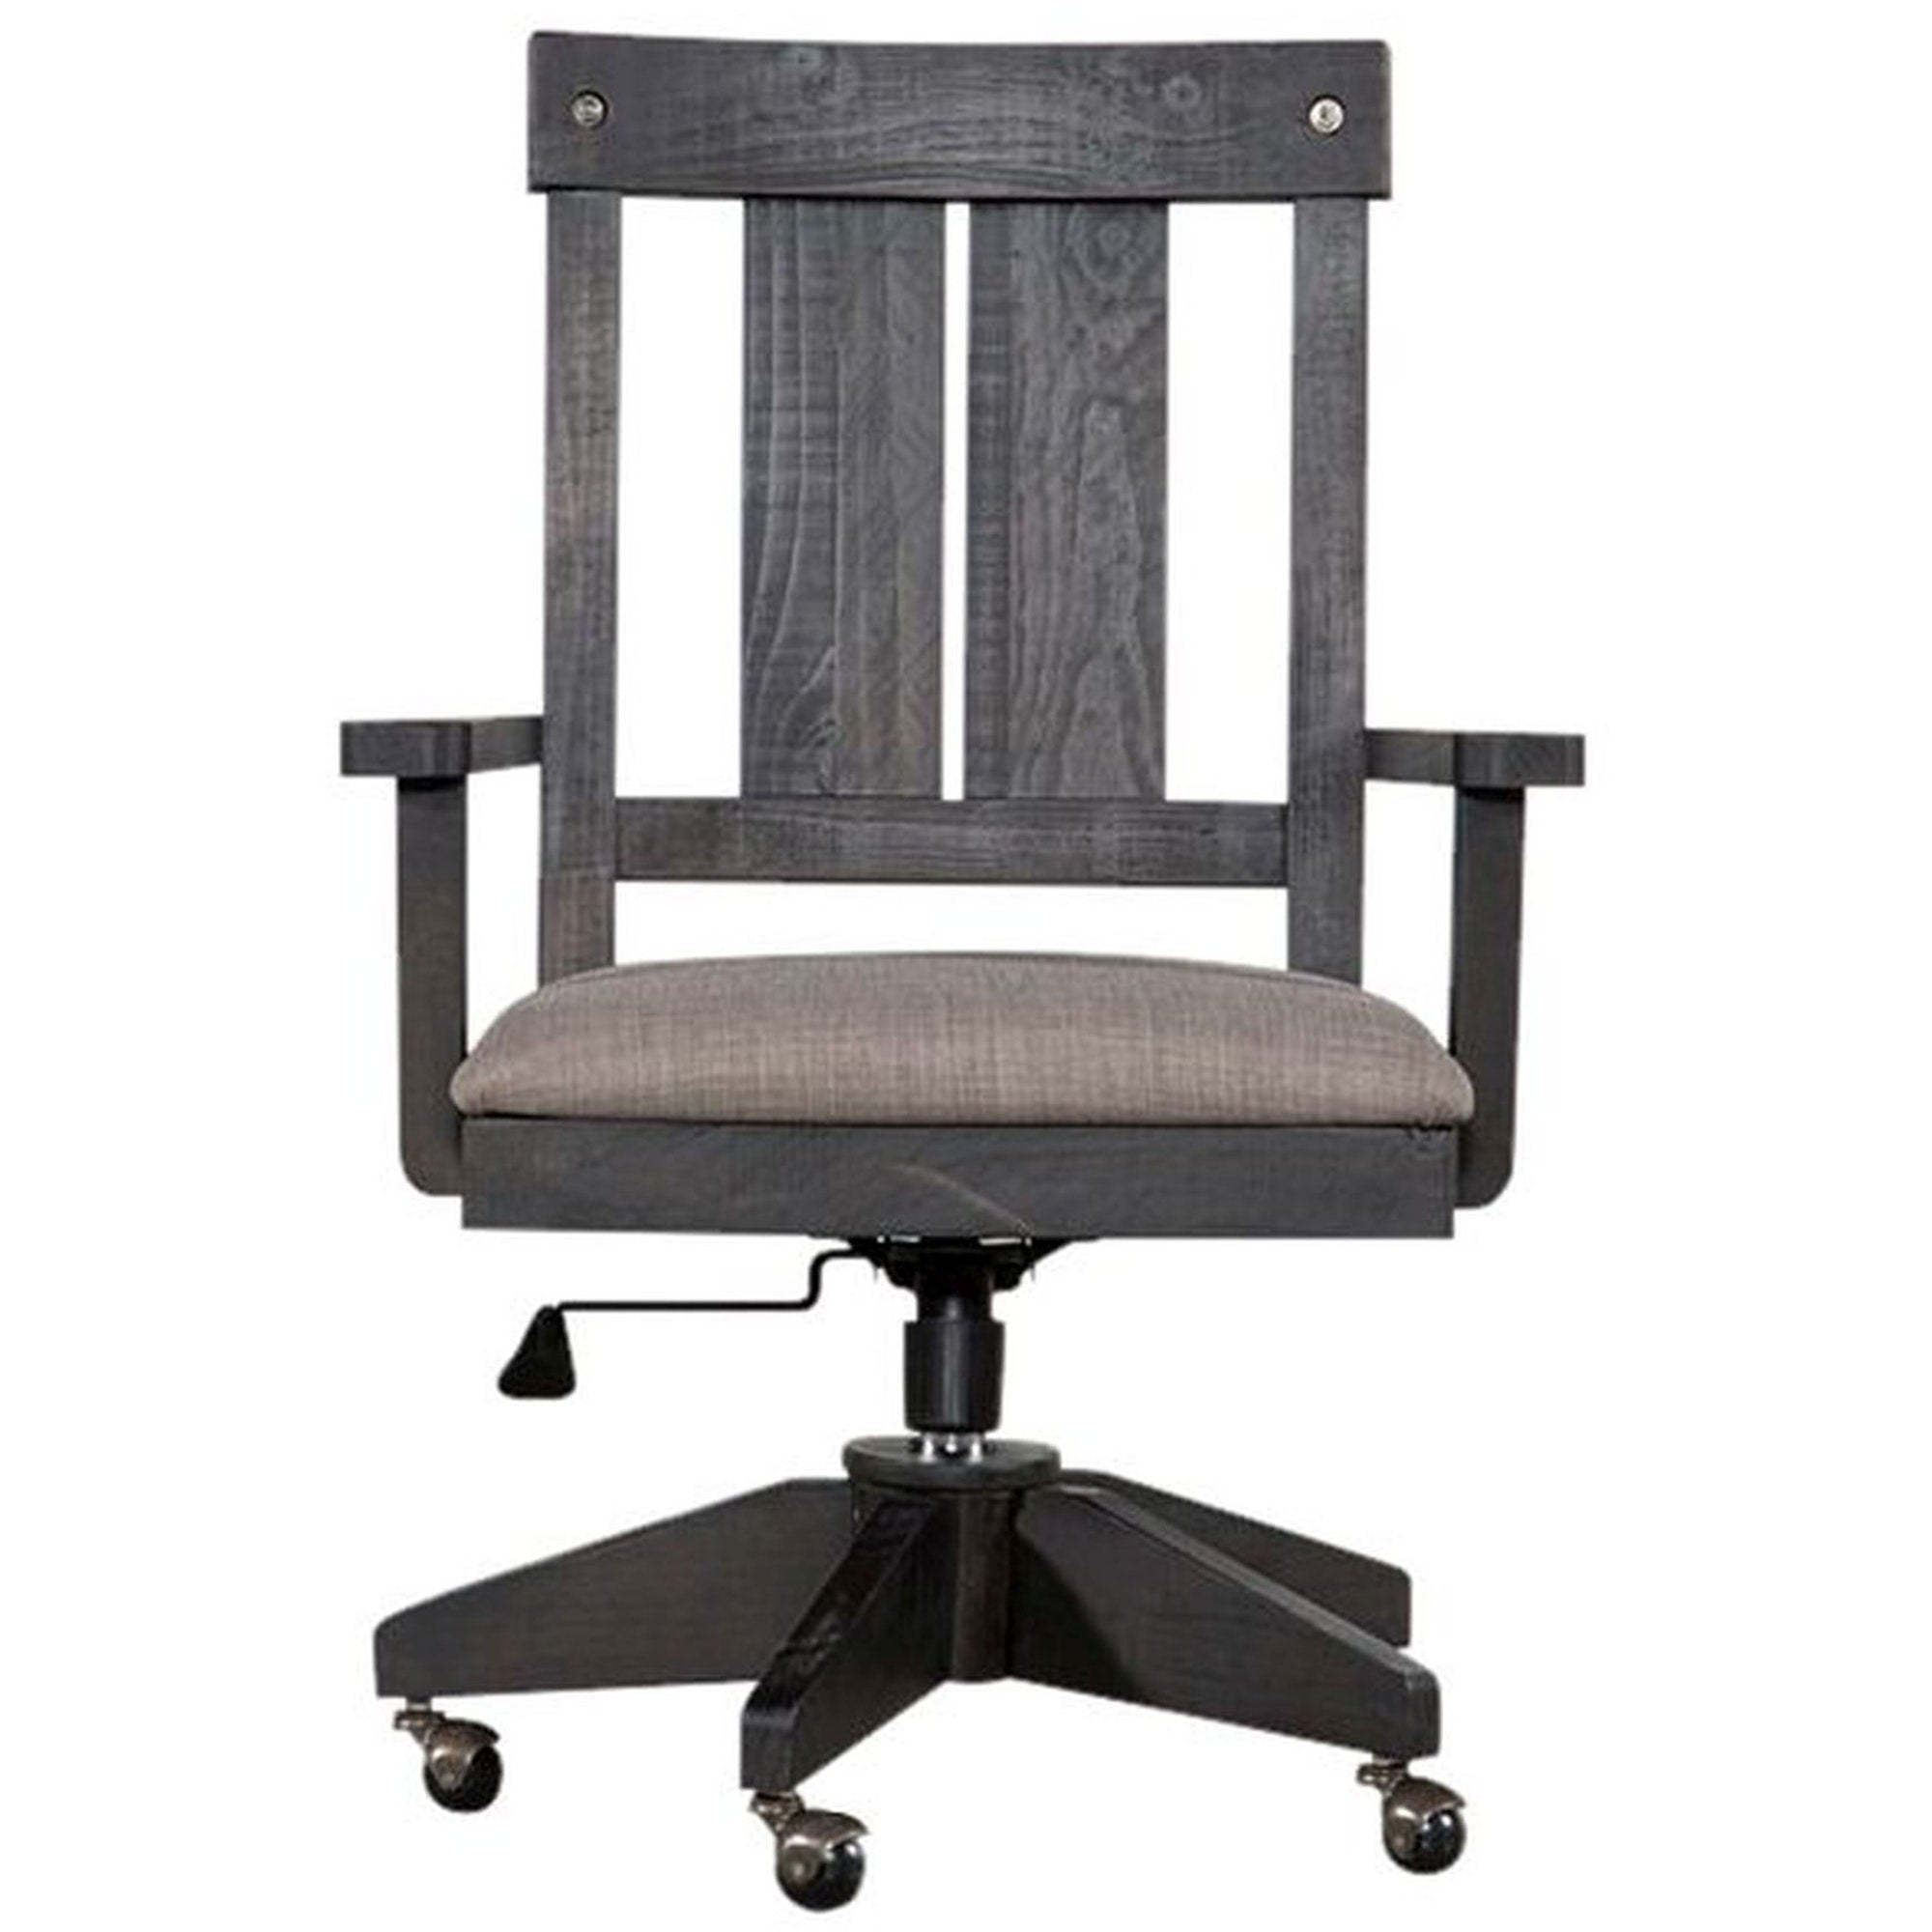 Yosemite Solid Wood Arm Chair in Cafe